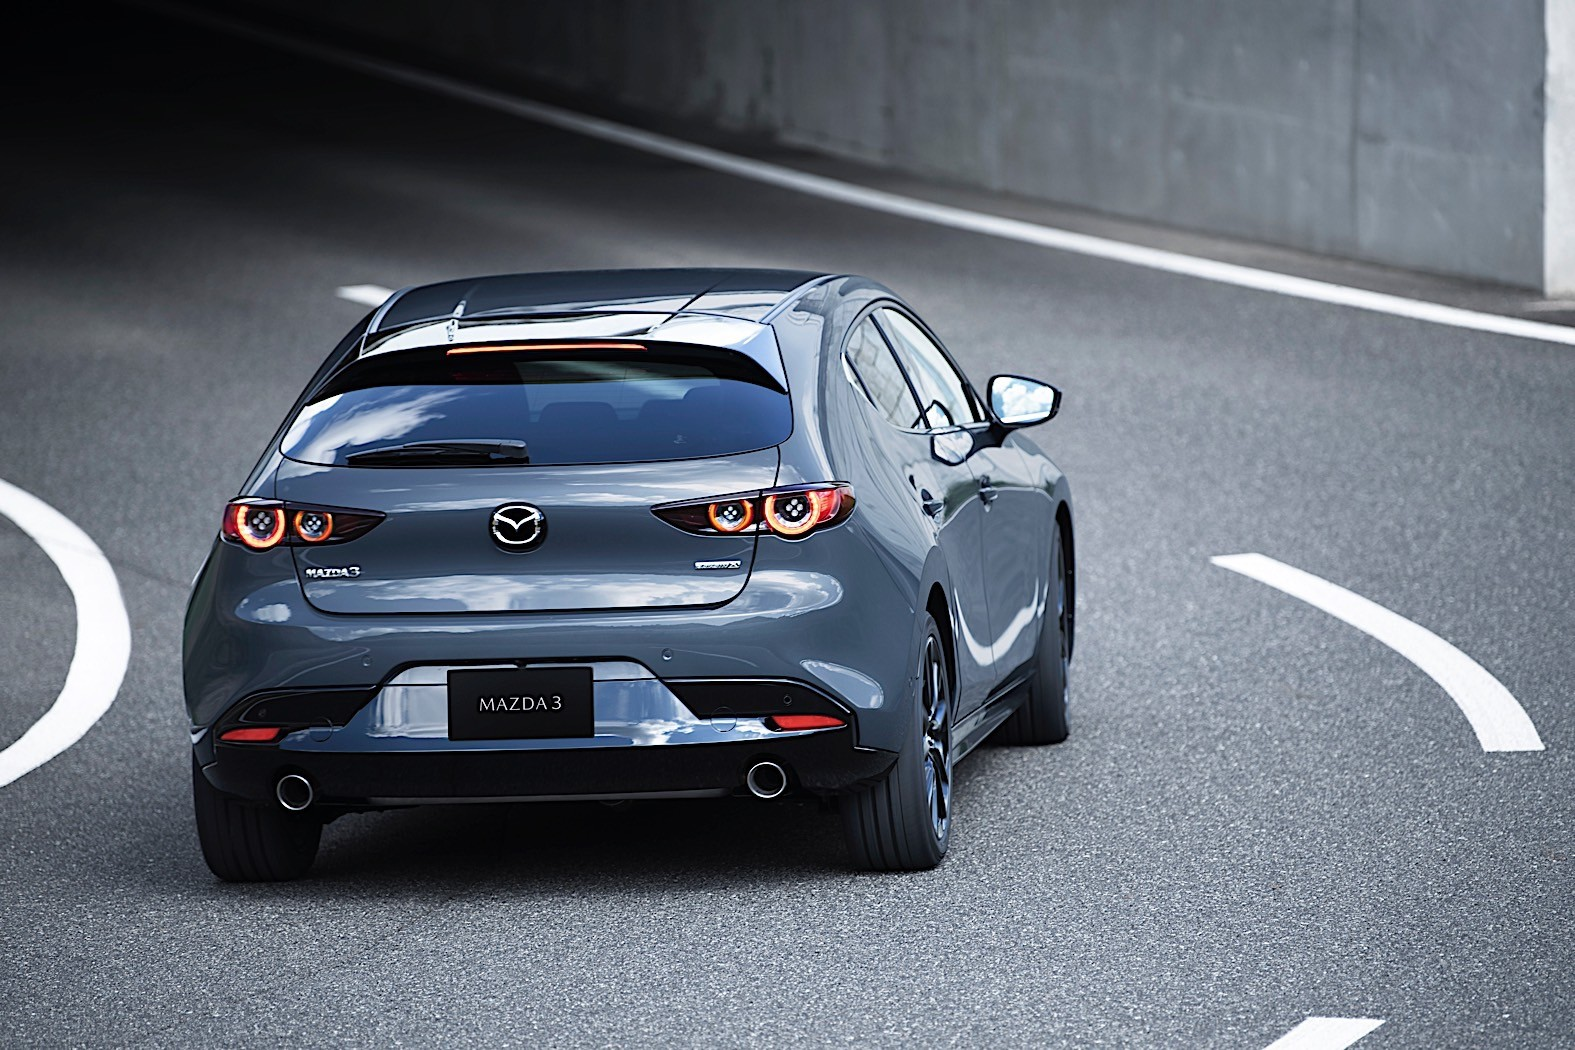 Even Though The Mazda3 Now Features Torsion Beam Rear Suspension Hiroshima Based Automaker Decided To Sweeten Deal With All Wheel Drive From